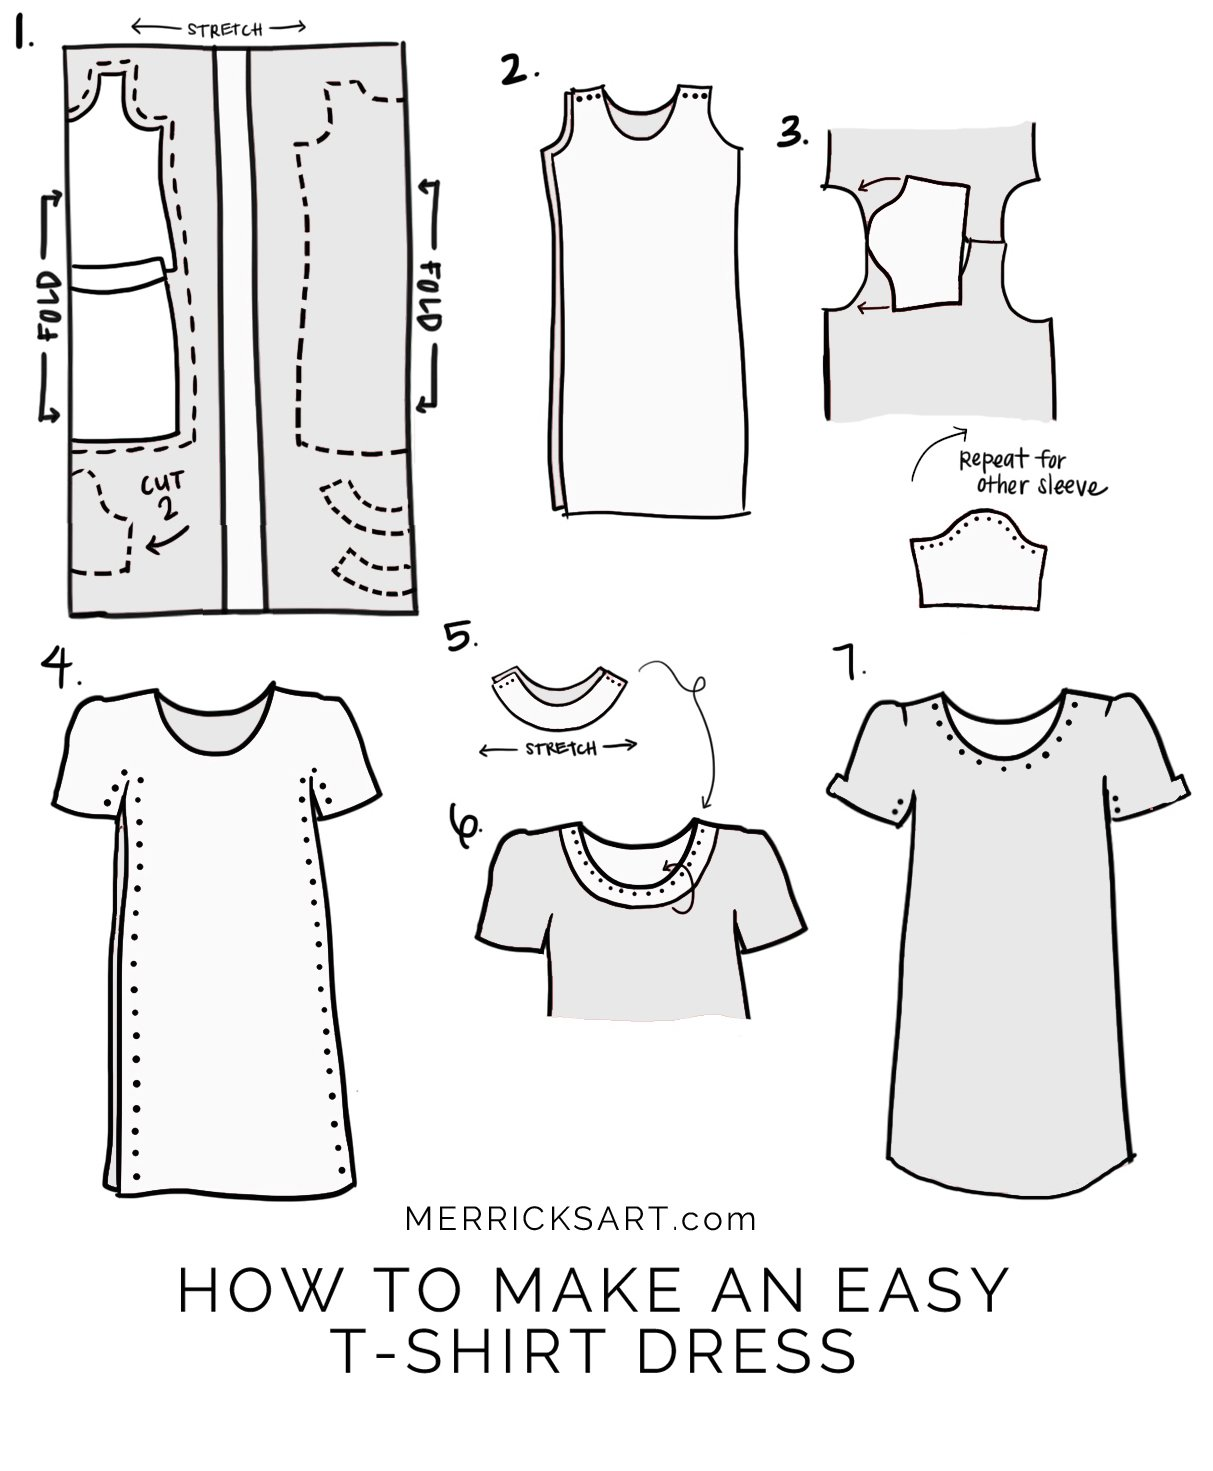 Merrick 39 s art style sewing for the everyday girlhow for Easy to make t shirt dress